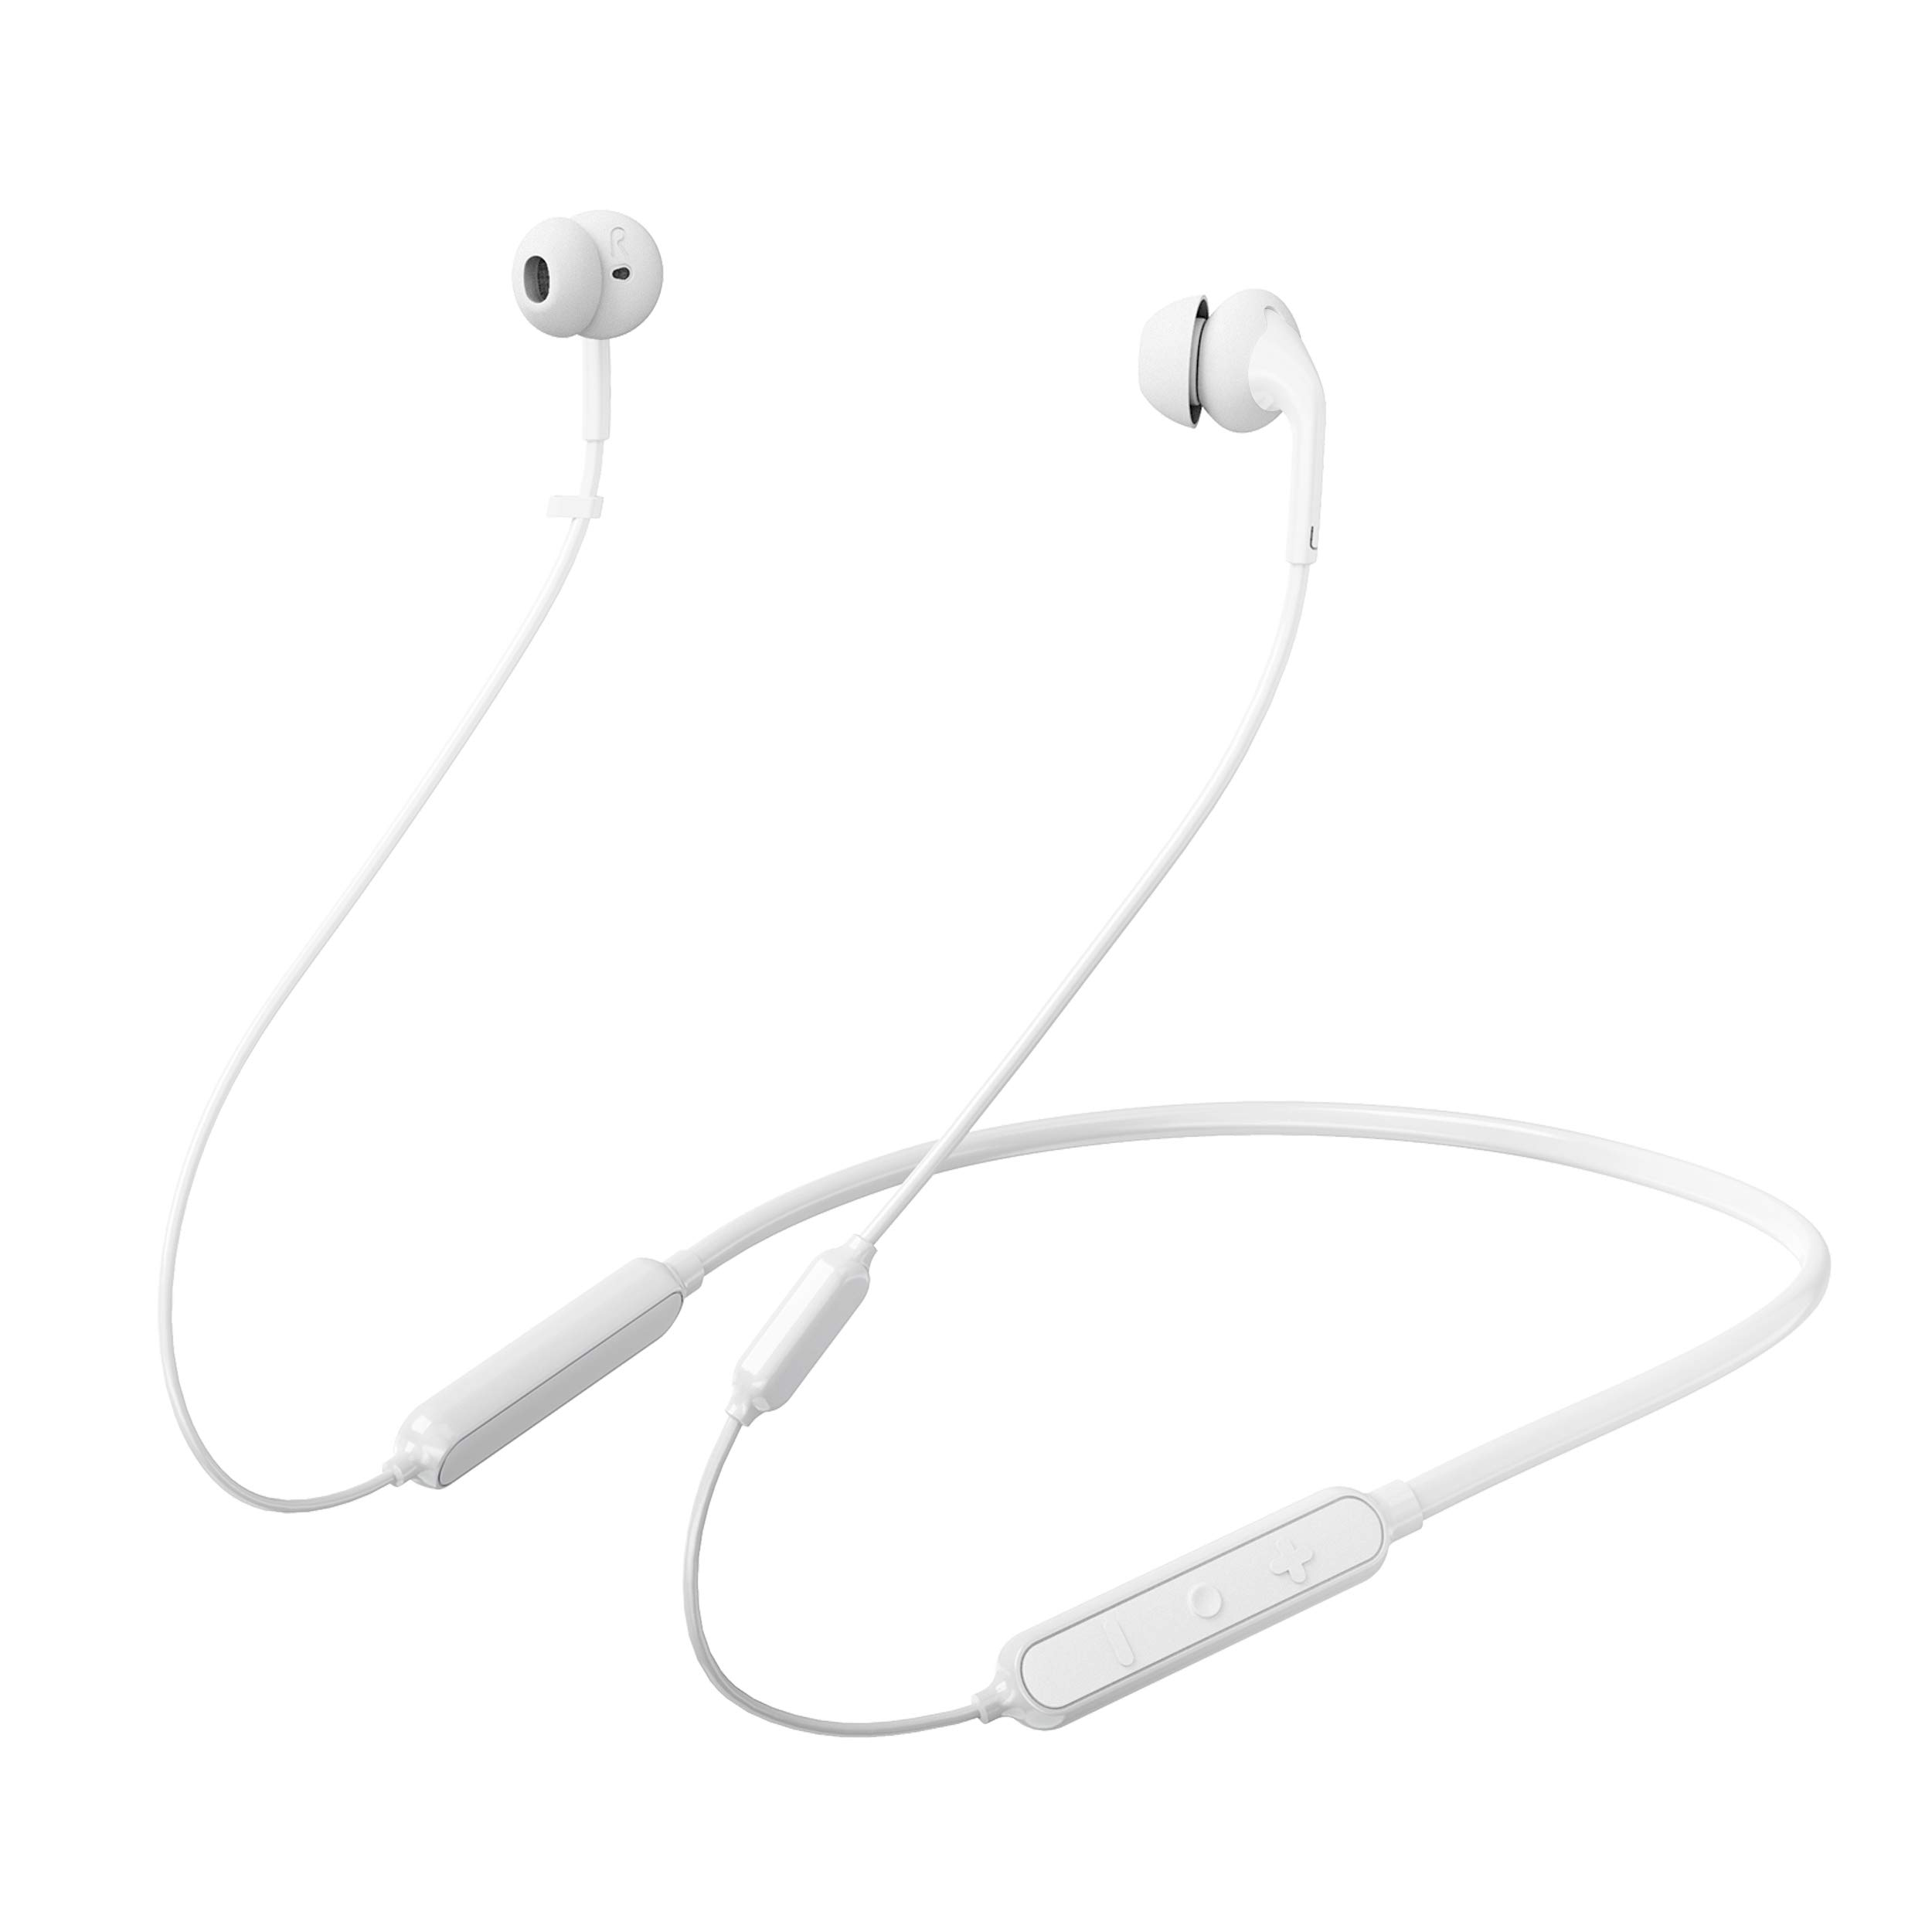 233621 Wave. Bluetooth 5.0 Wireless Neckband Headphones. 15 Hrs Playtime, Stable, Reliable, Fast Pairing, Bluetooth 5.0, Calling Noise Reduction, IPX5 Waterproof & Skin-Friendly (White)